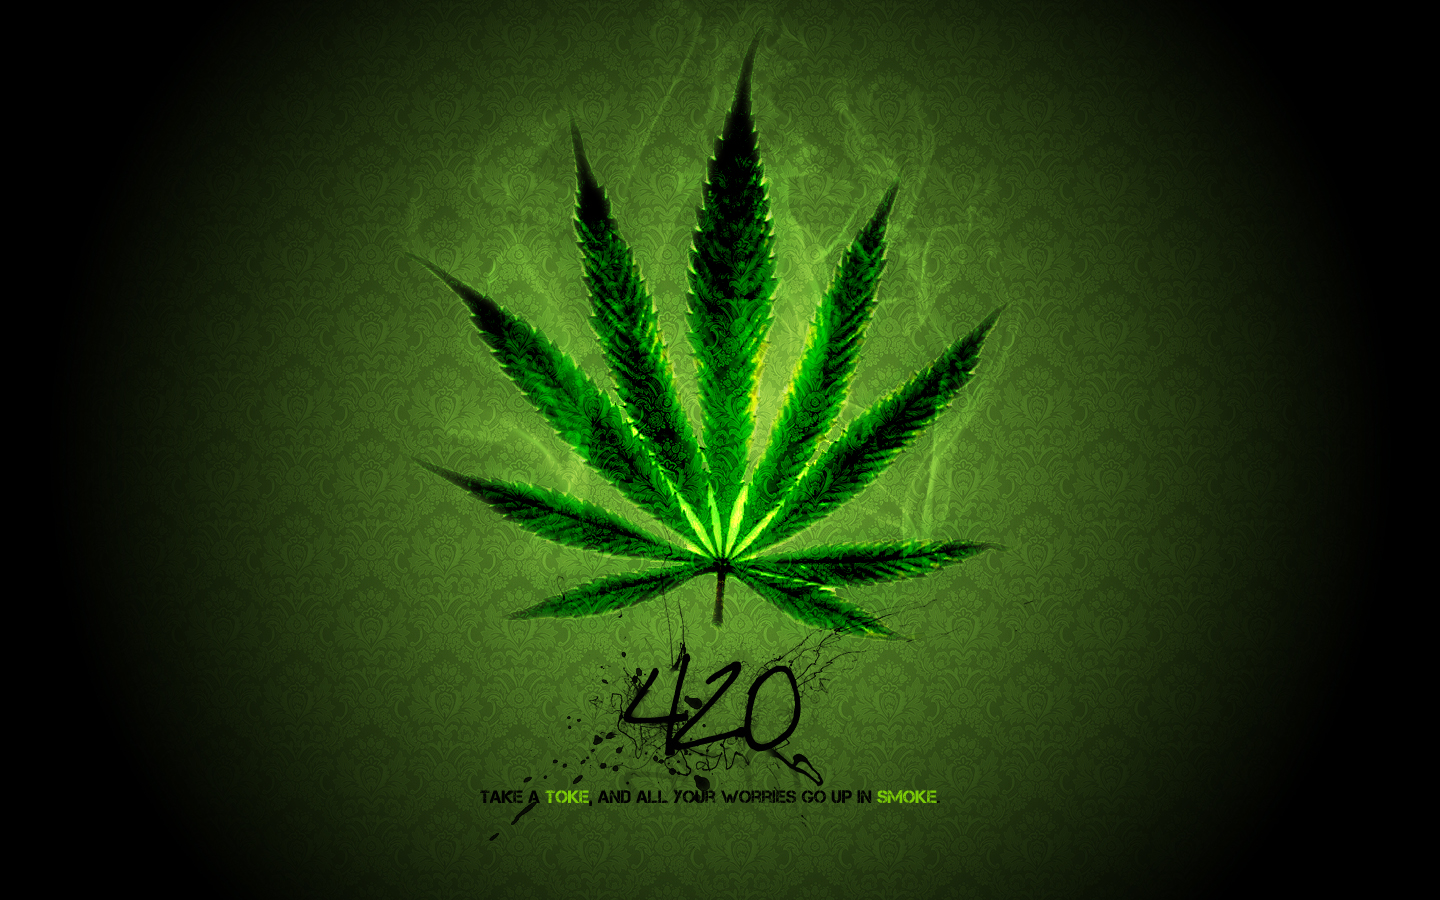 Google chrome themes quotes - Weed Leaf Google Wallpapers Smoking Weed Leaf Google Backgrounds